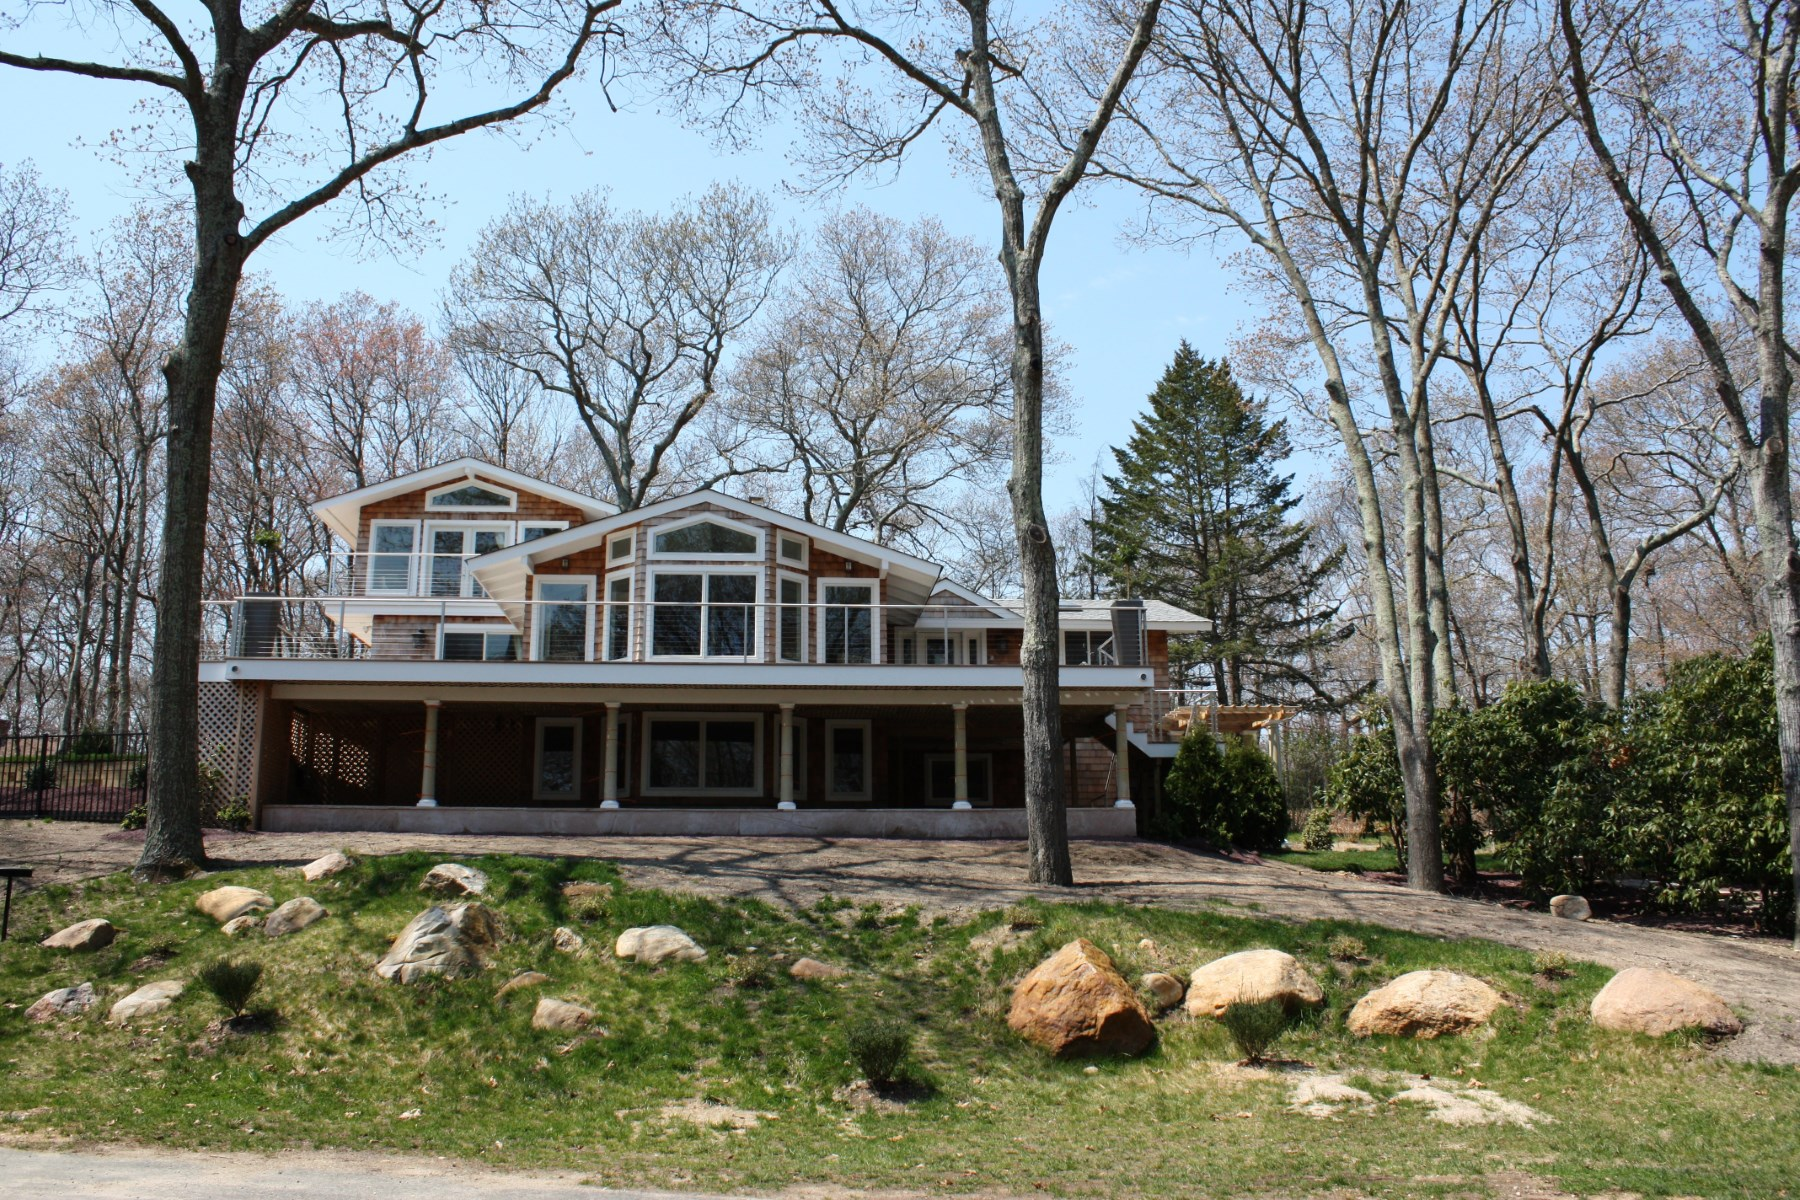 Single Family Home for Rent at Hamptons Chic with Water Views East Hampton, New York 11937 United States